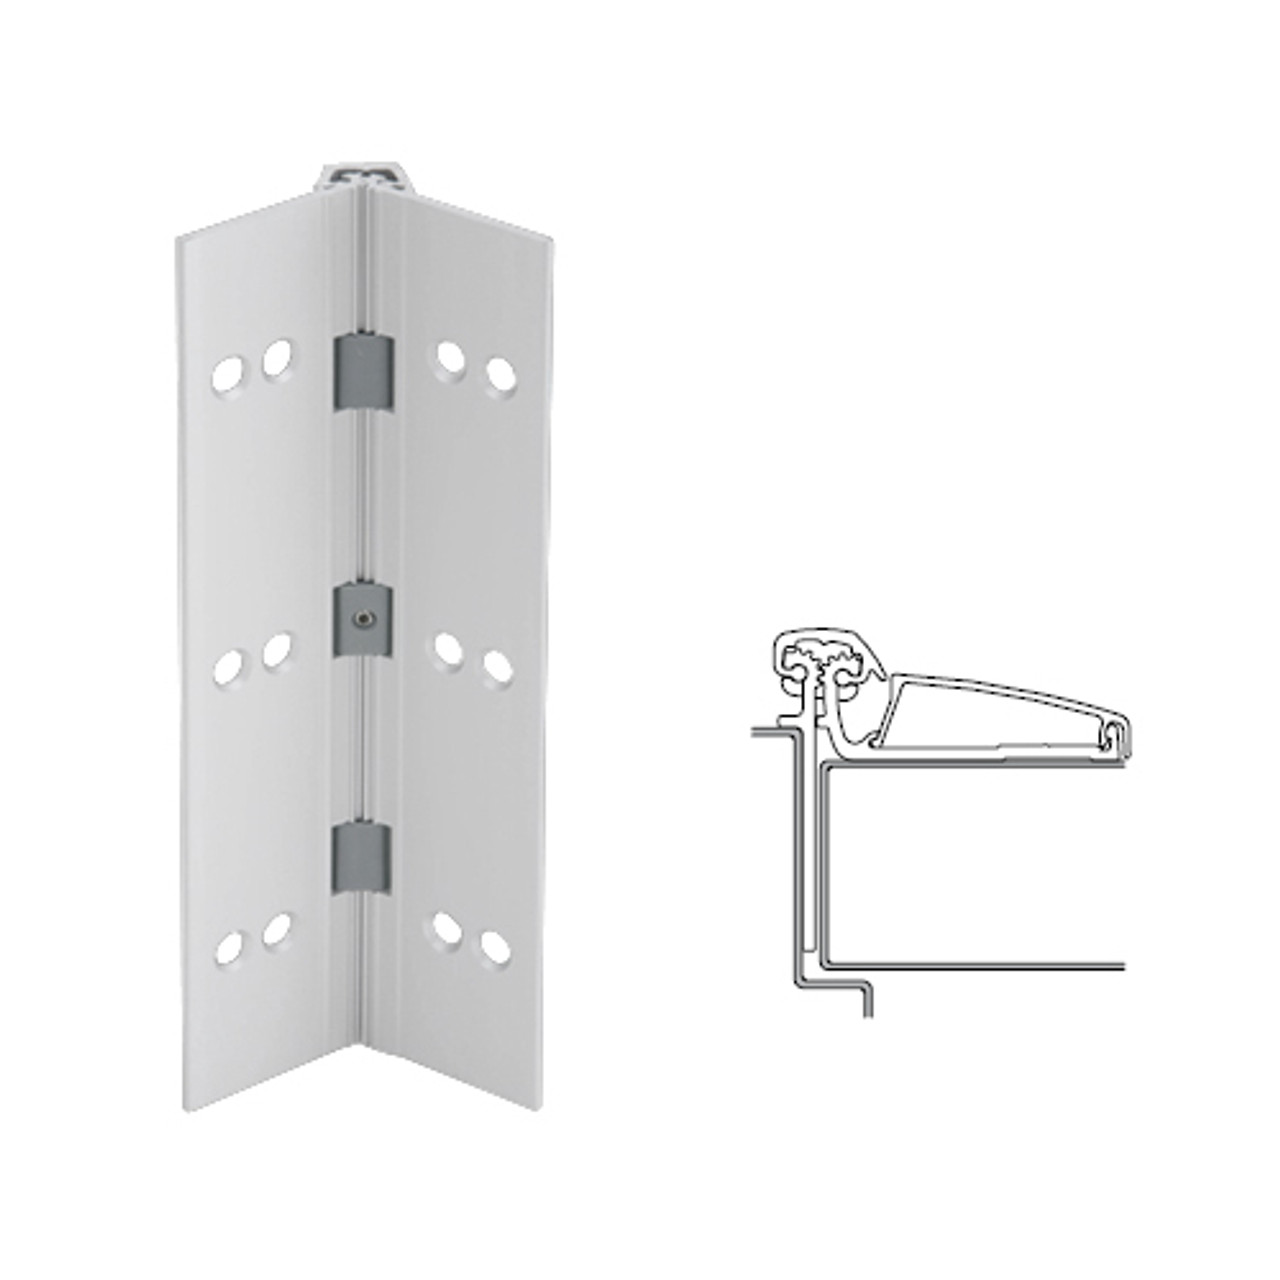 046XY-US28-85-SECWDWD IVES Adjustable Half Surface Continuous Geared Hinges with Security Screws - Hex Pin Drive in Satin Aluminum